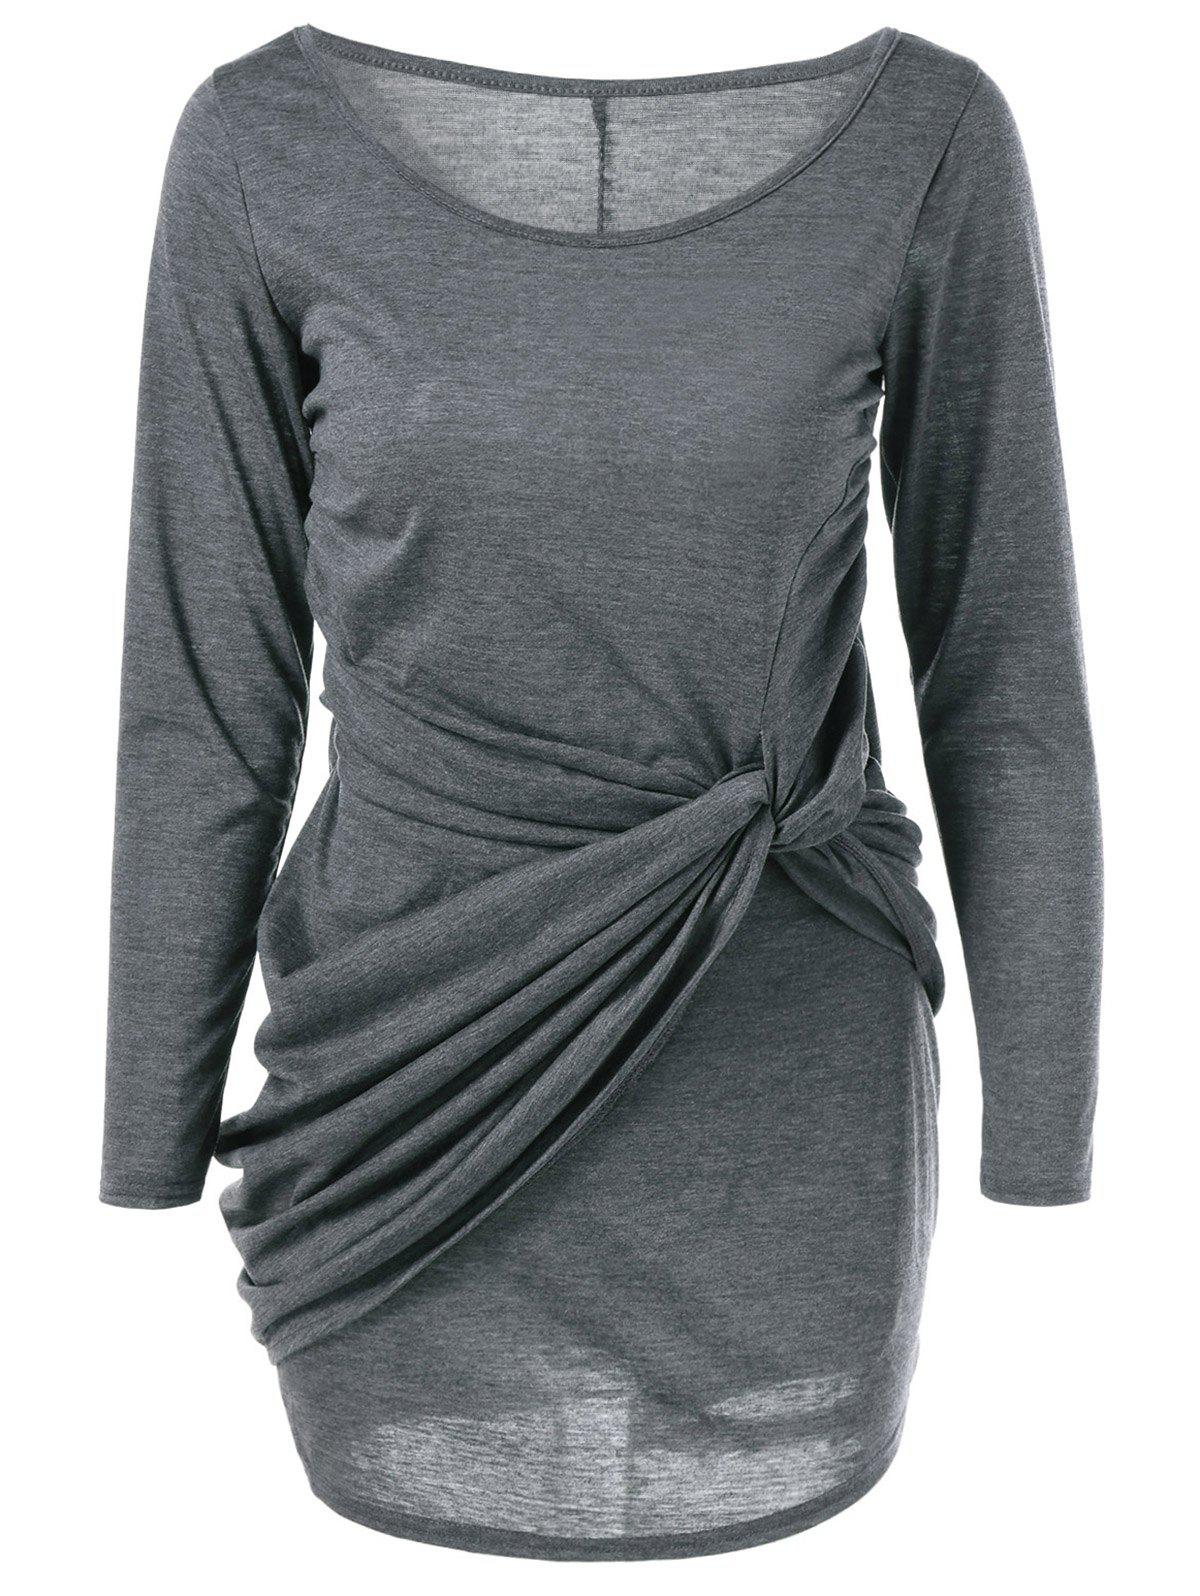 Scoop Neck Twist-Front Dress - GRAY S